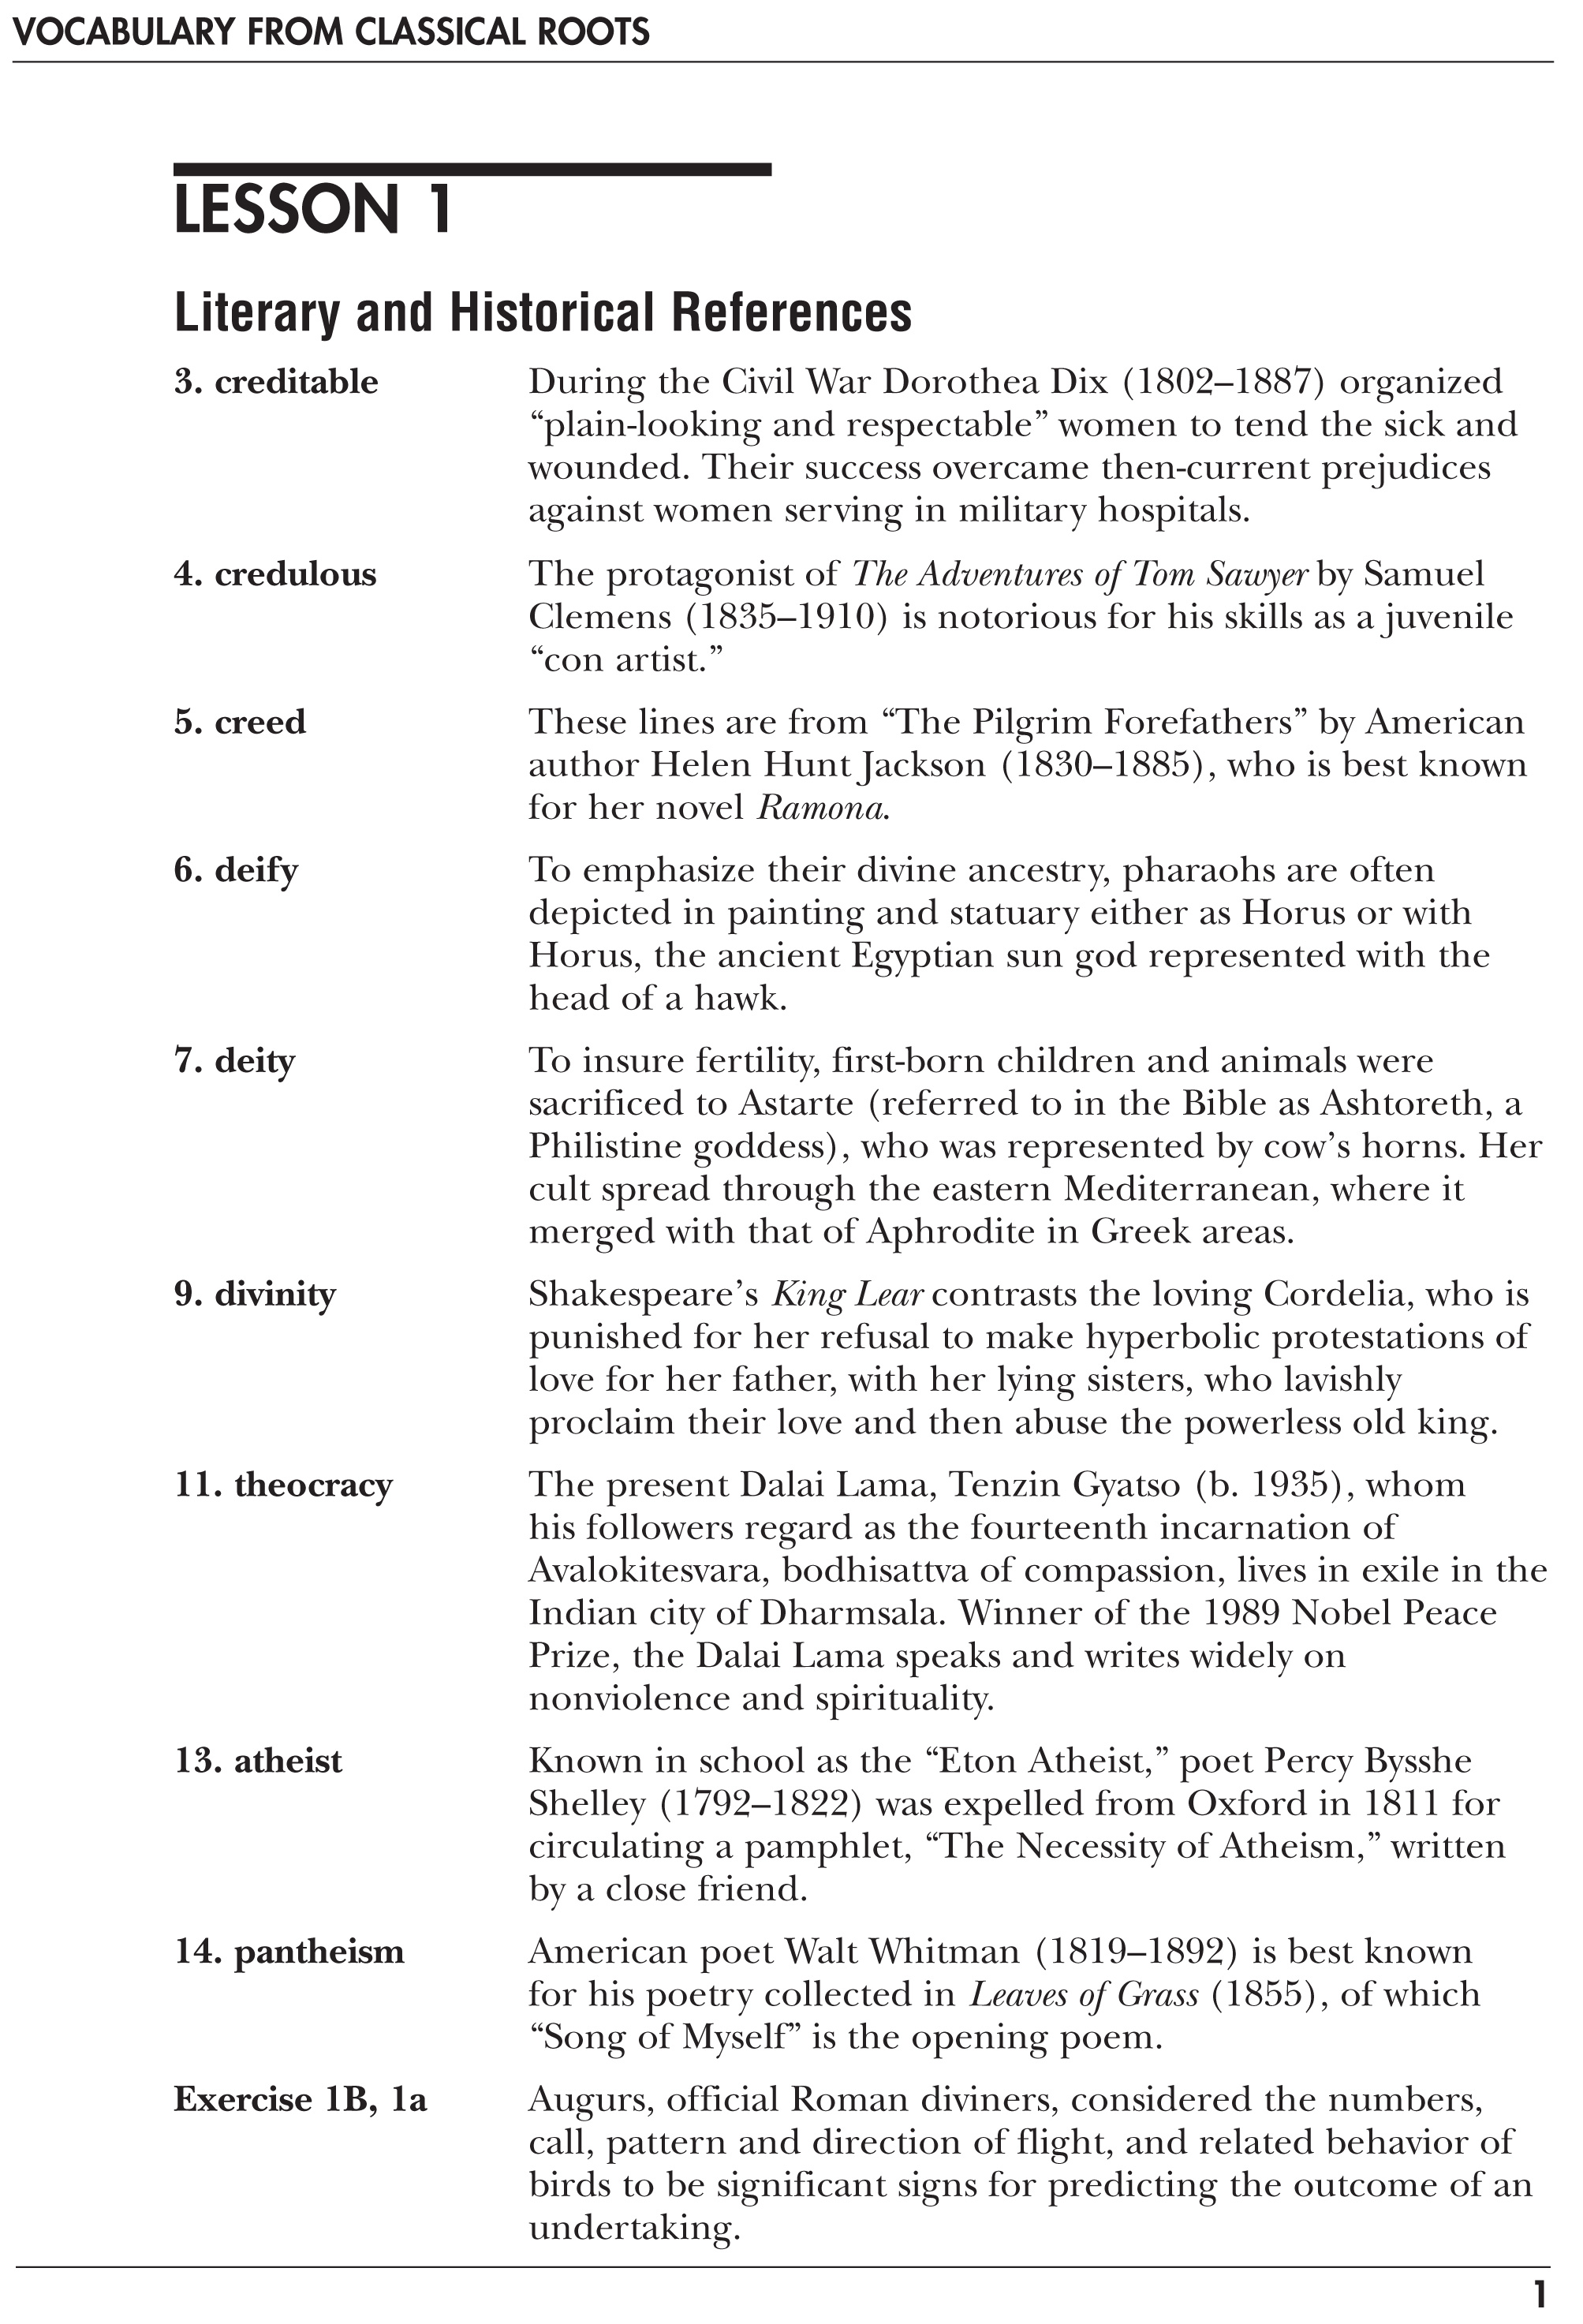 Vocabulary from Classical Roots D - Teacher's Guide/Answer ...